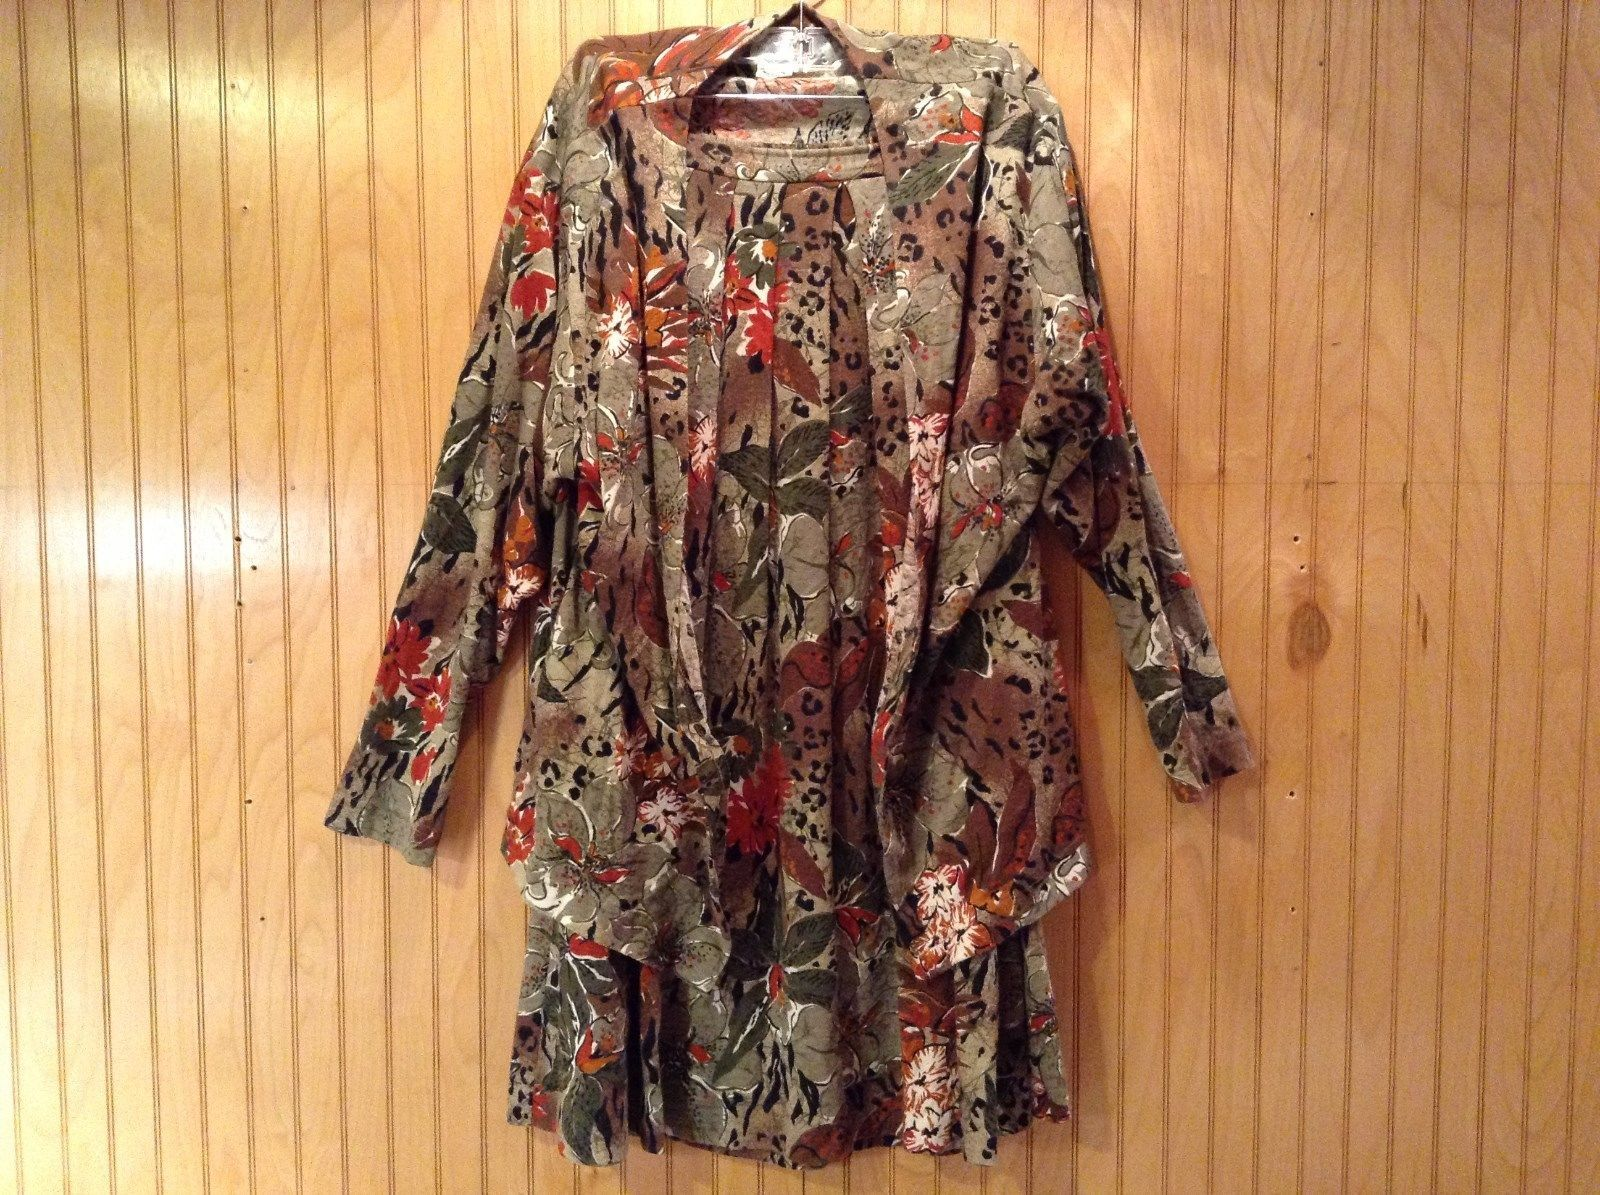 Boston Traveler Flowered Skirt and Jacket Set Size Medium Long Sleeves